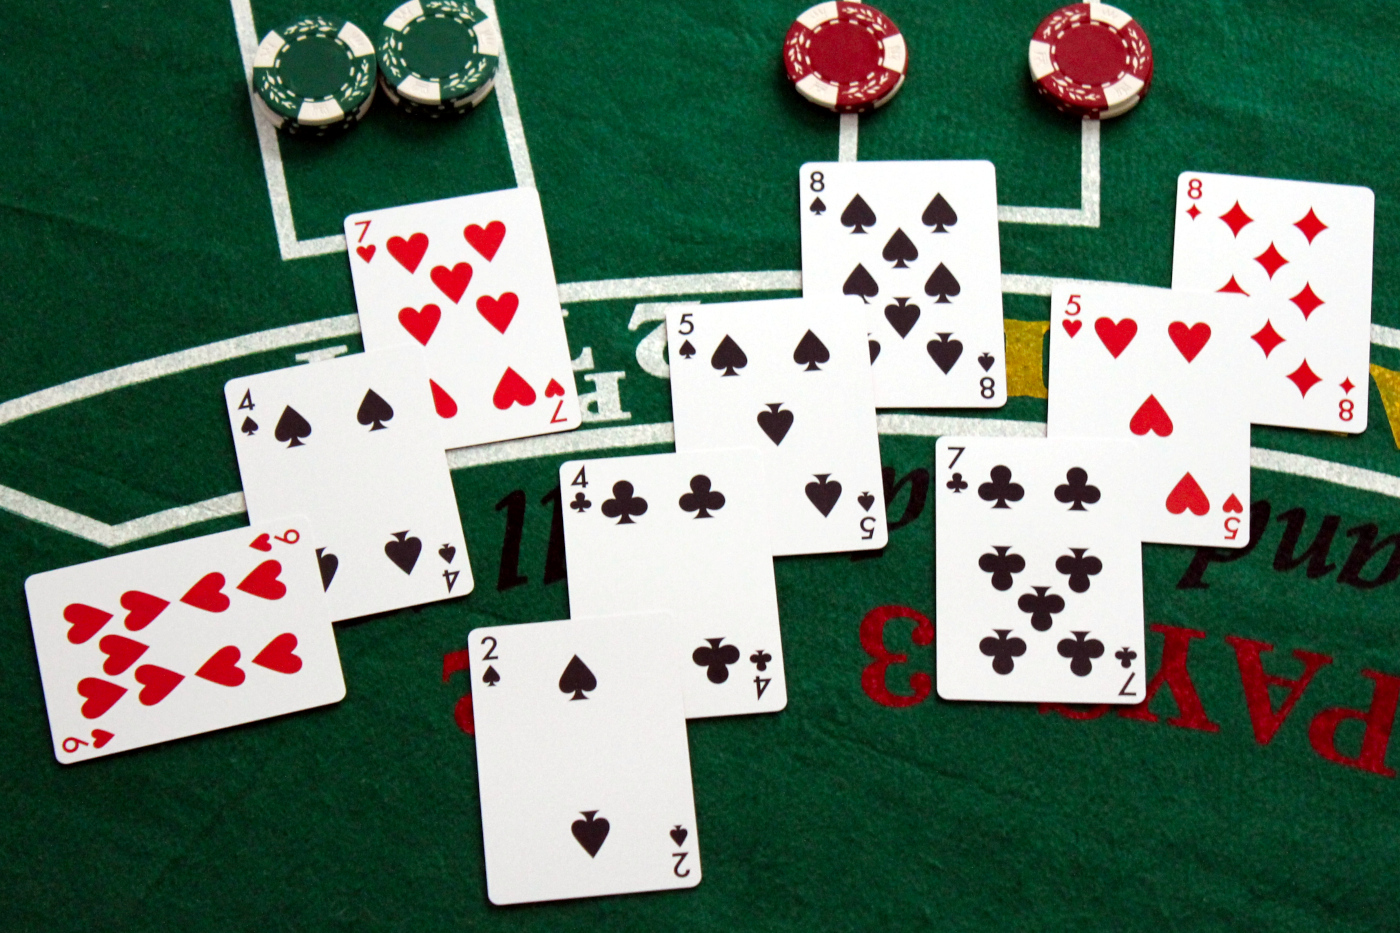 Playing cards being used to play blackjack